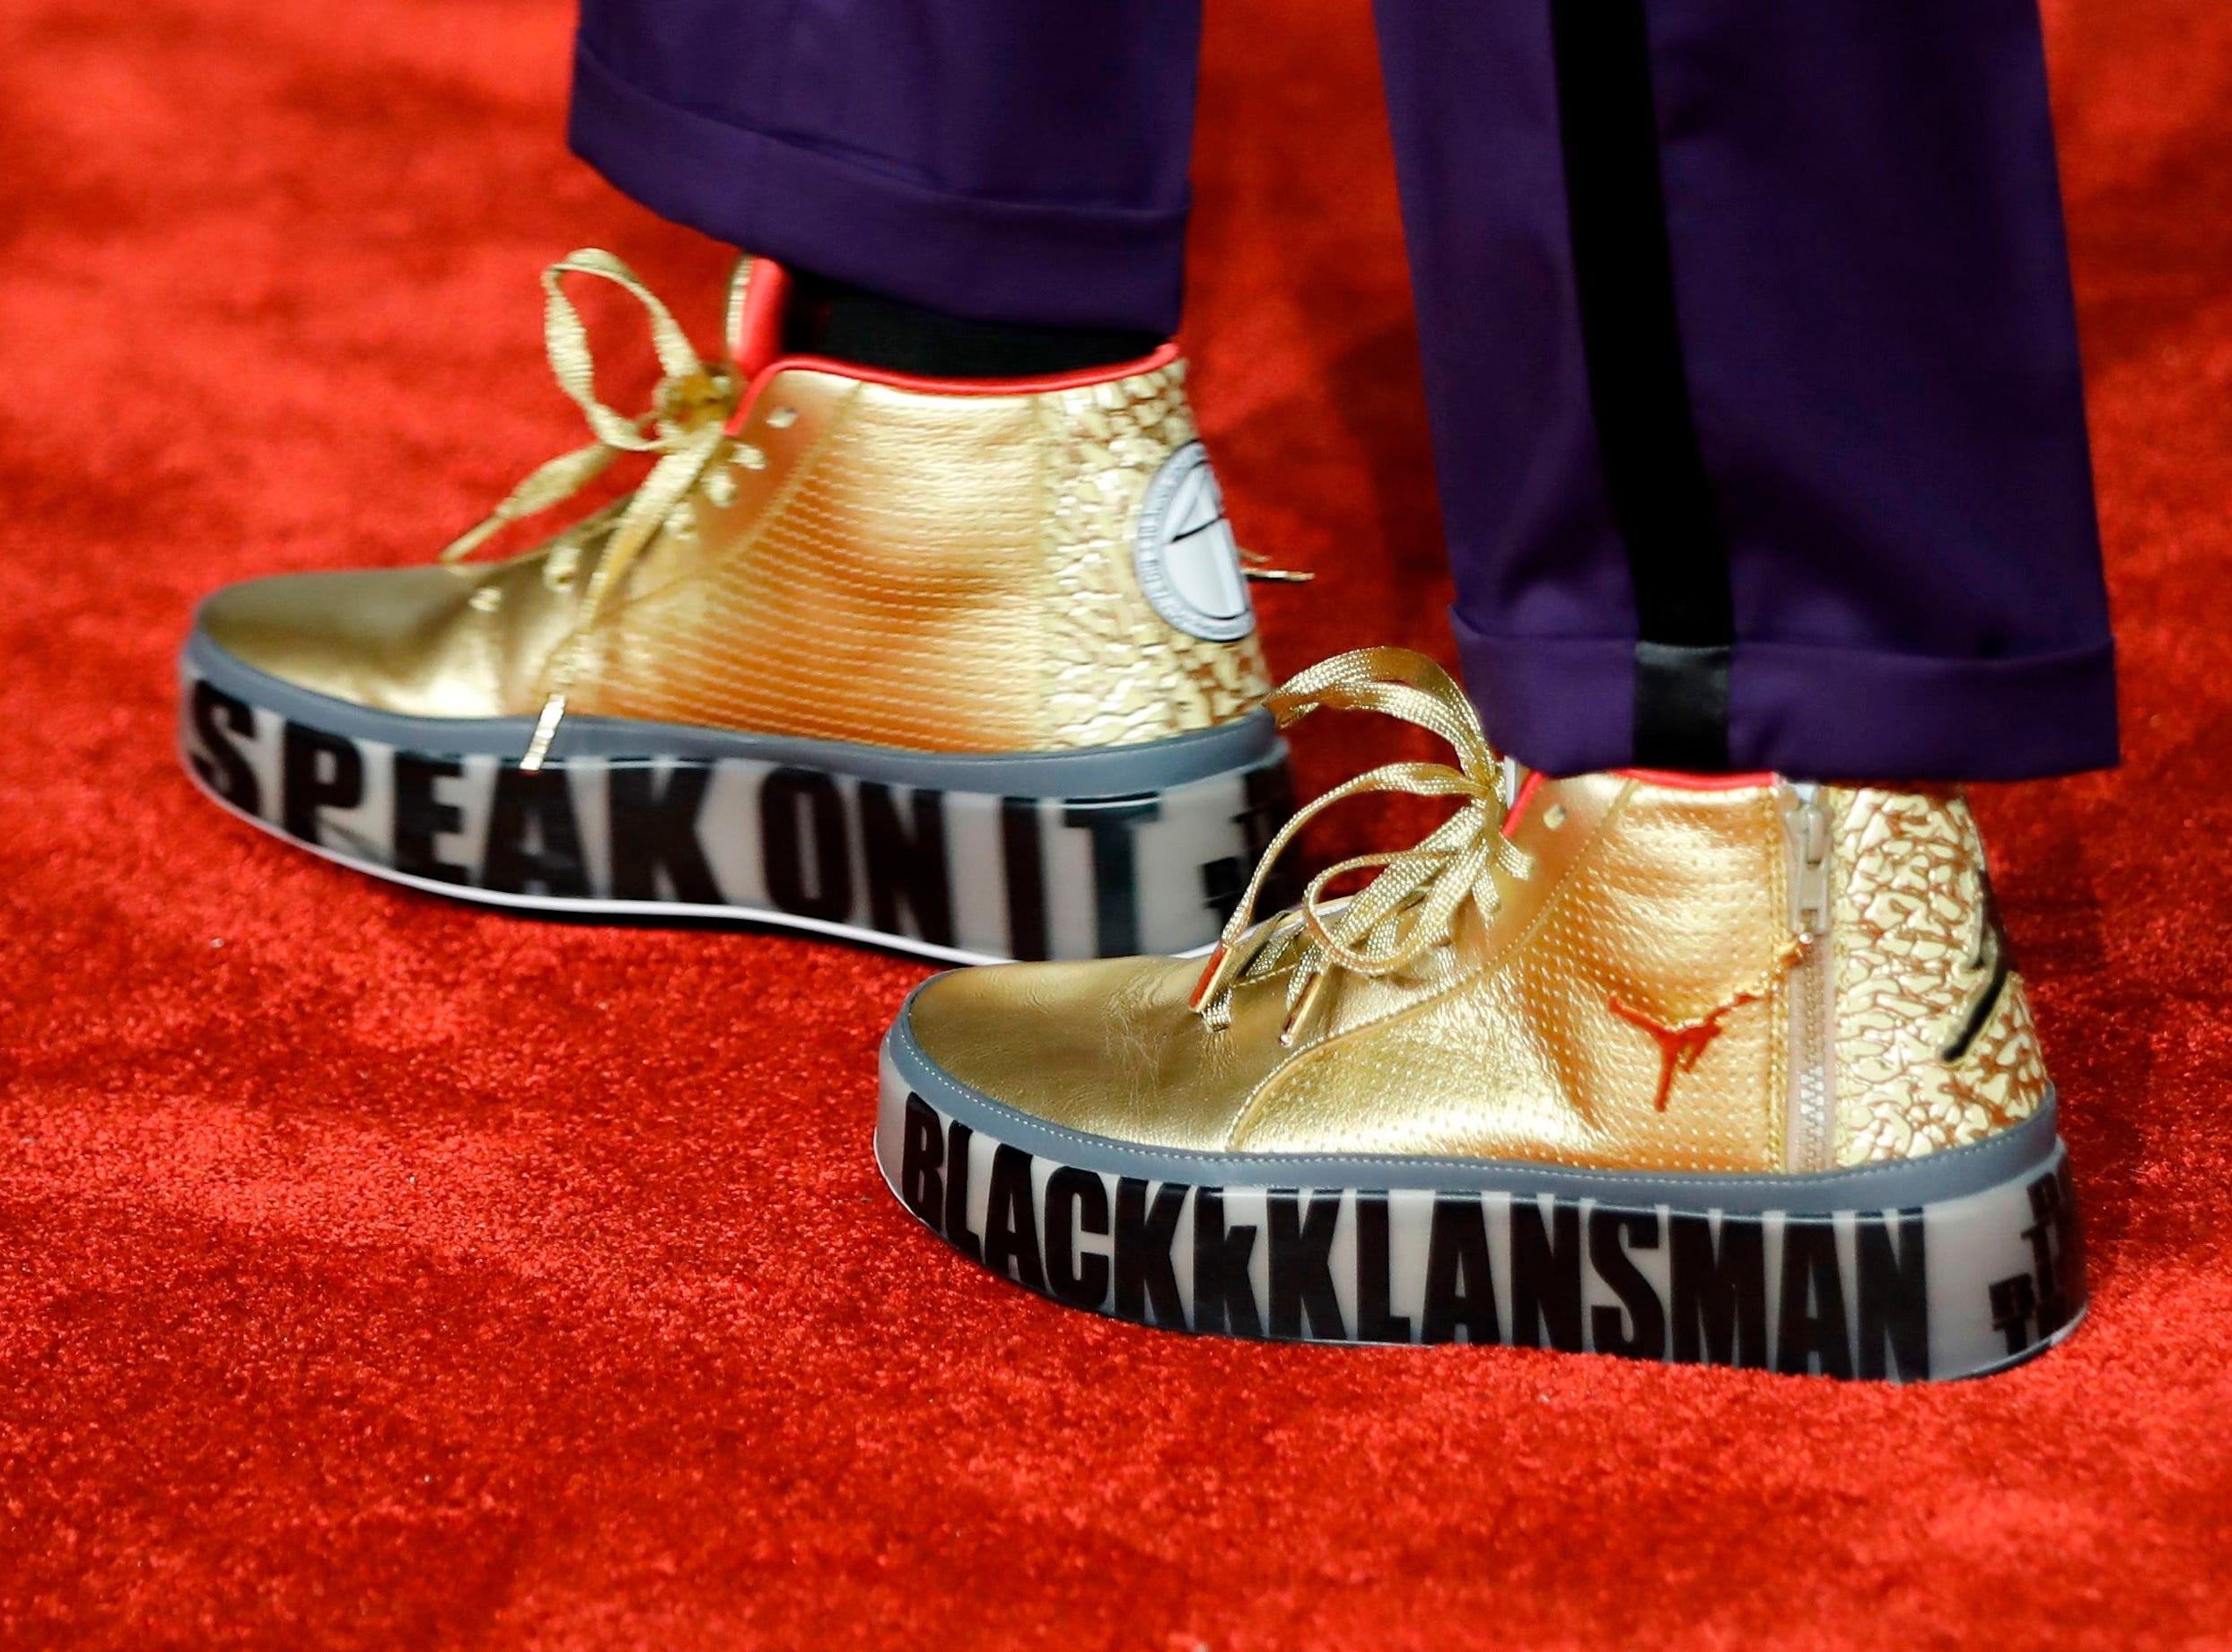 Director Spike Lee's shoes .